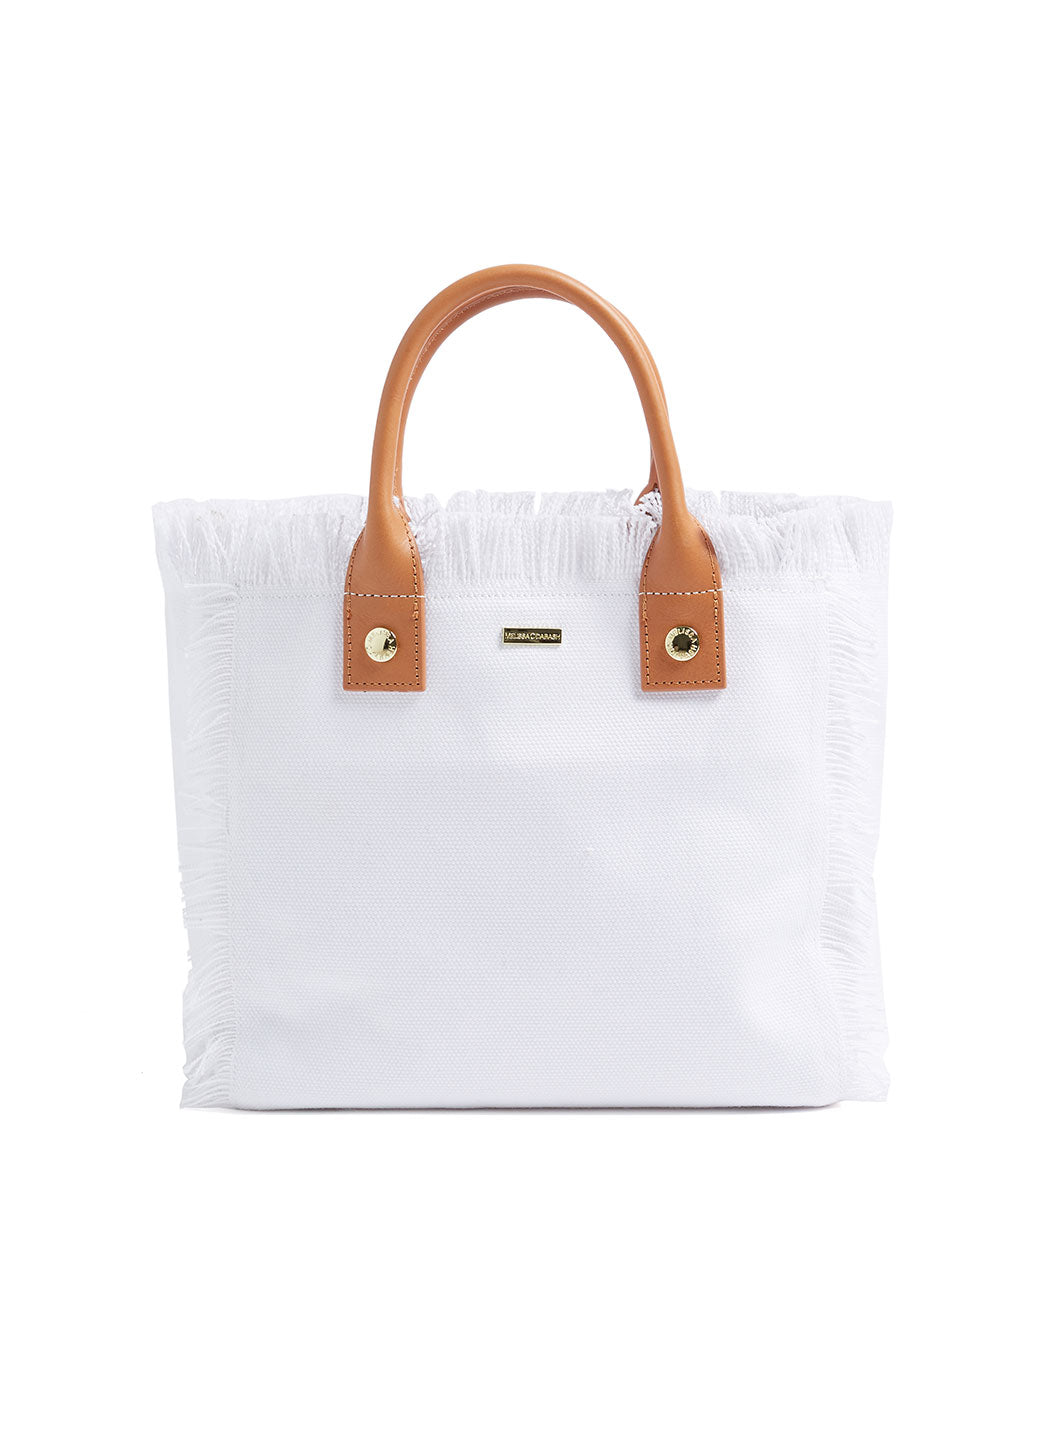 Porto Cervo Mini Beach Tote White - Melissa Odabash Accessories